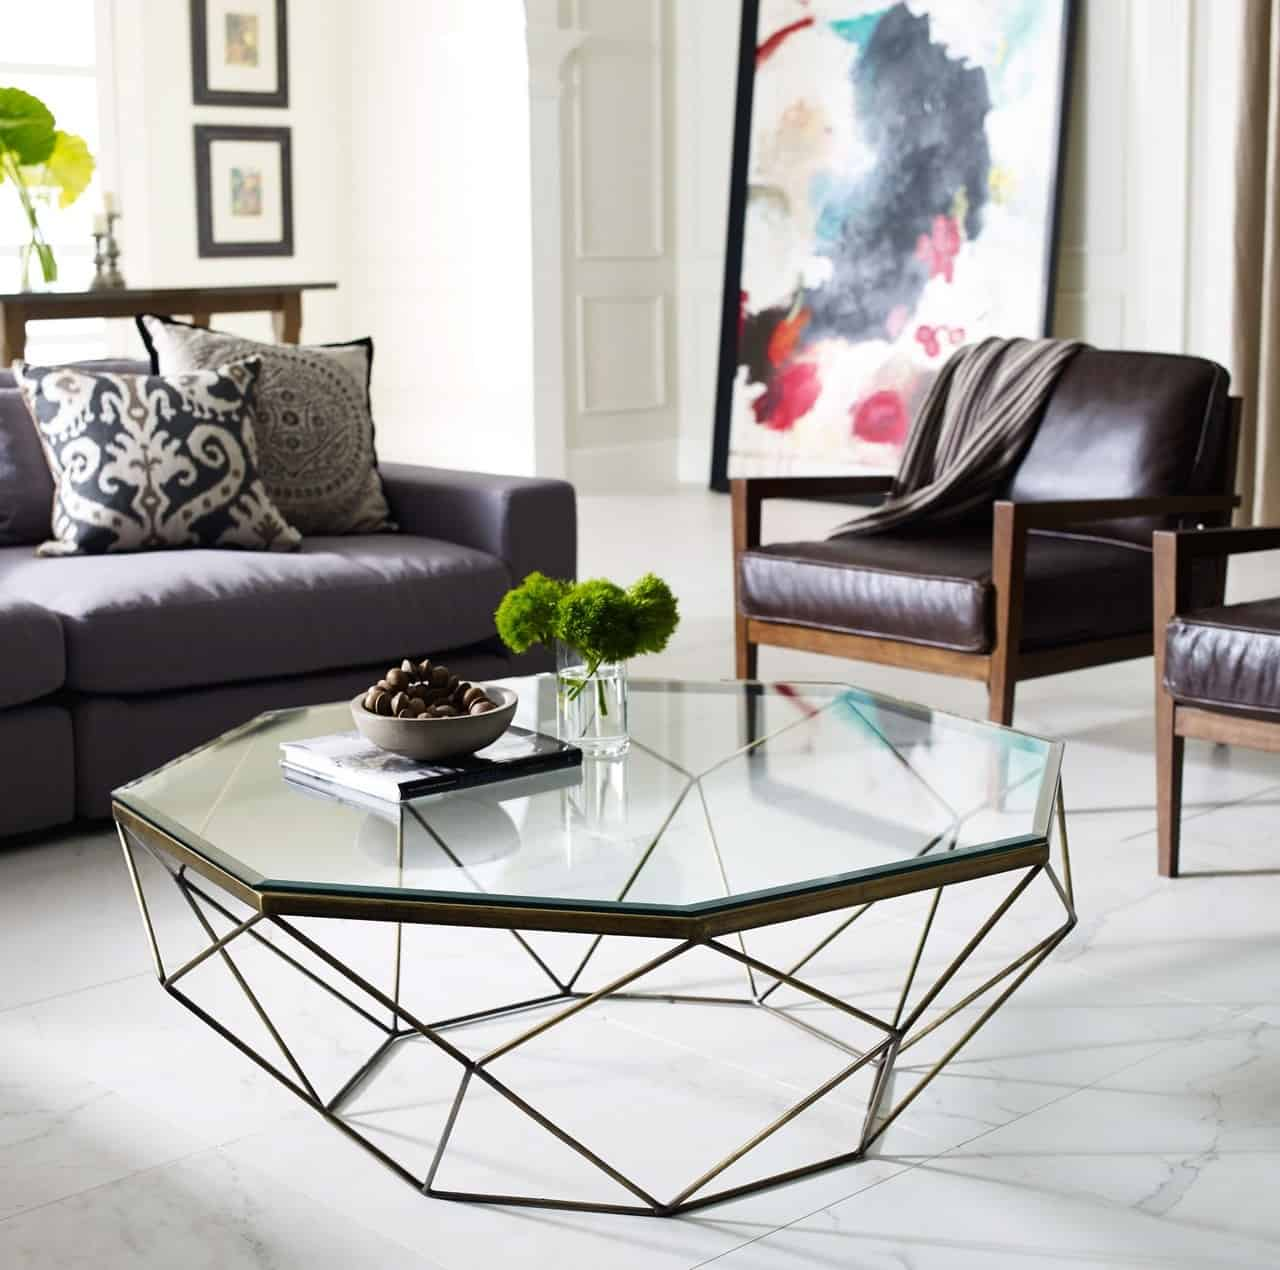 Modern coffee table trends for 2018 for Glass living room furniture